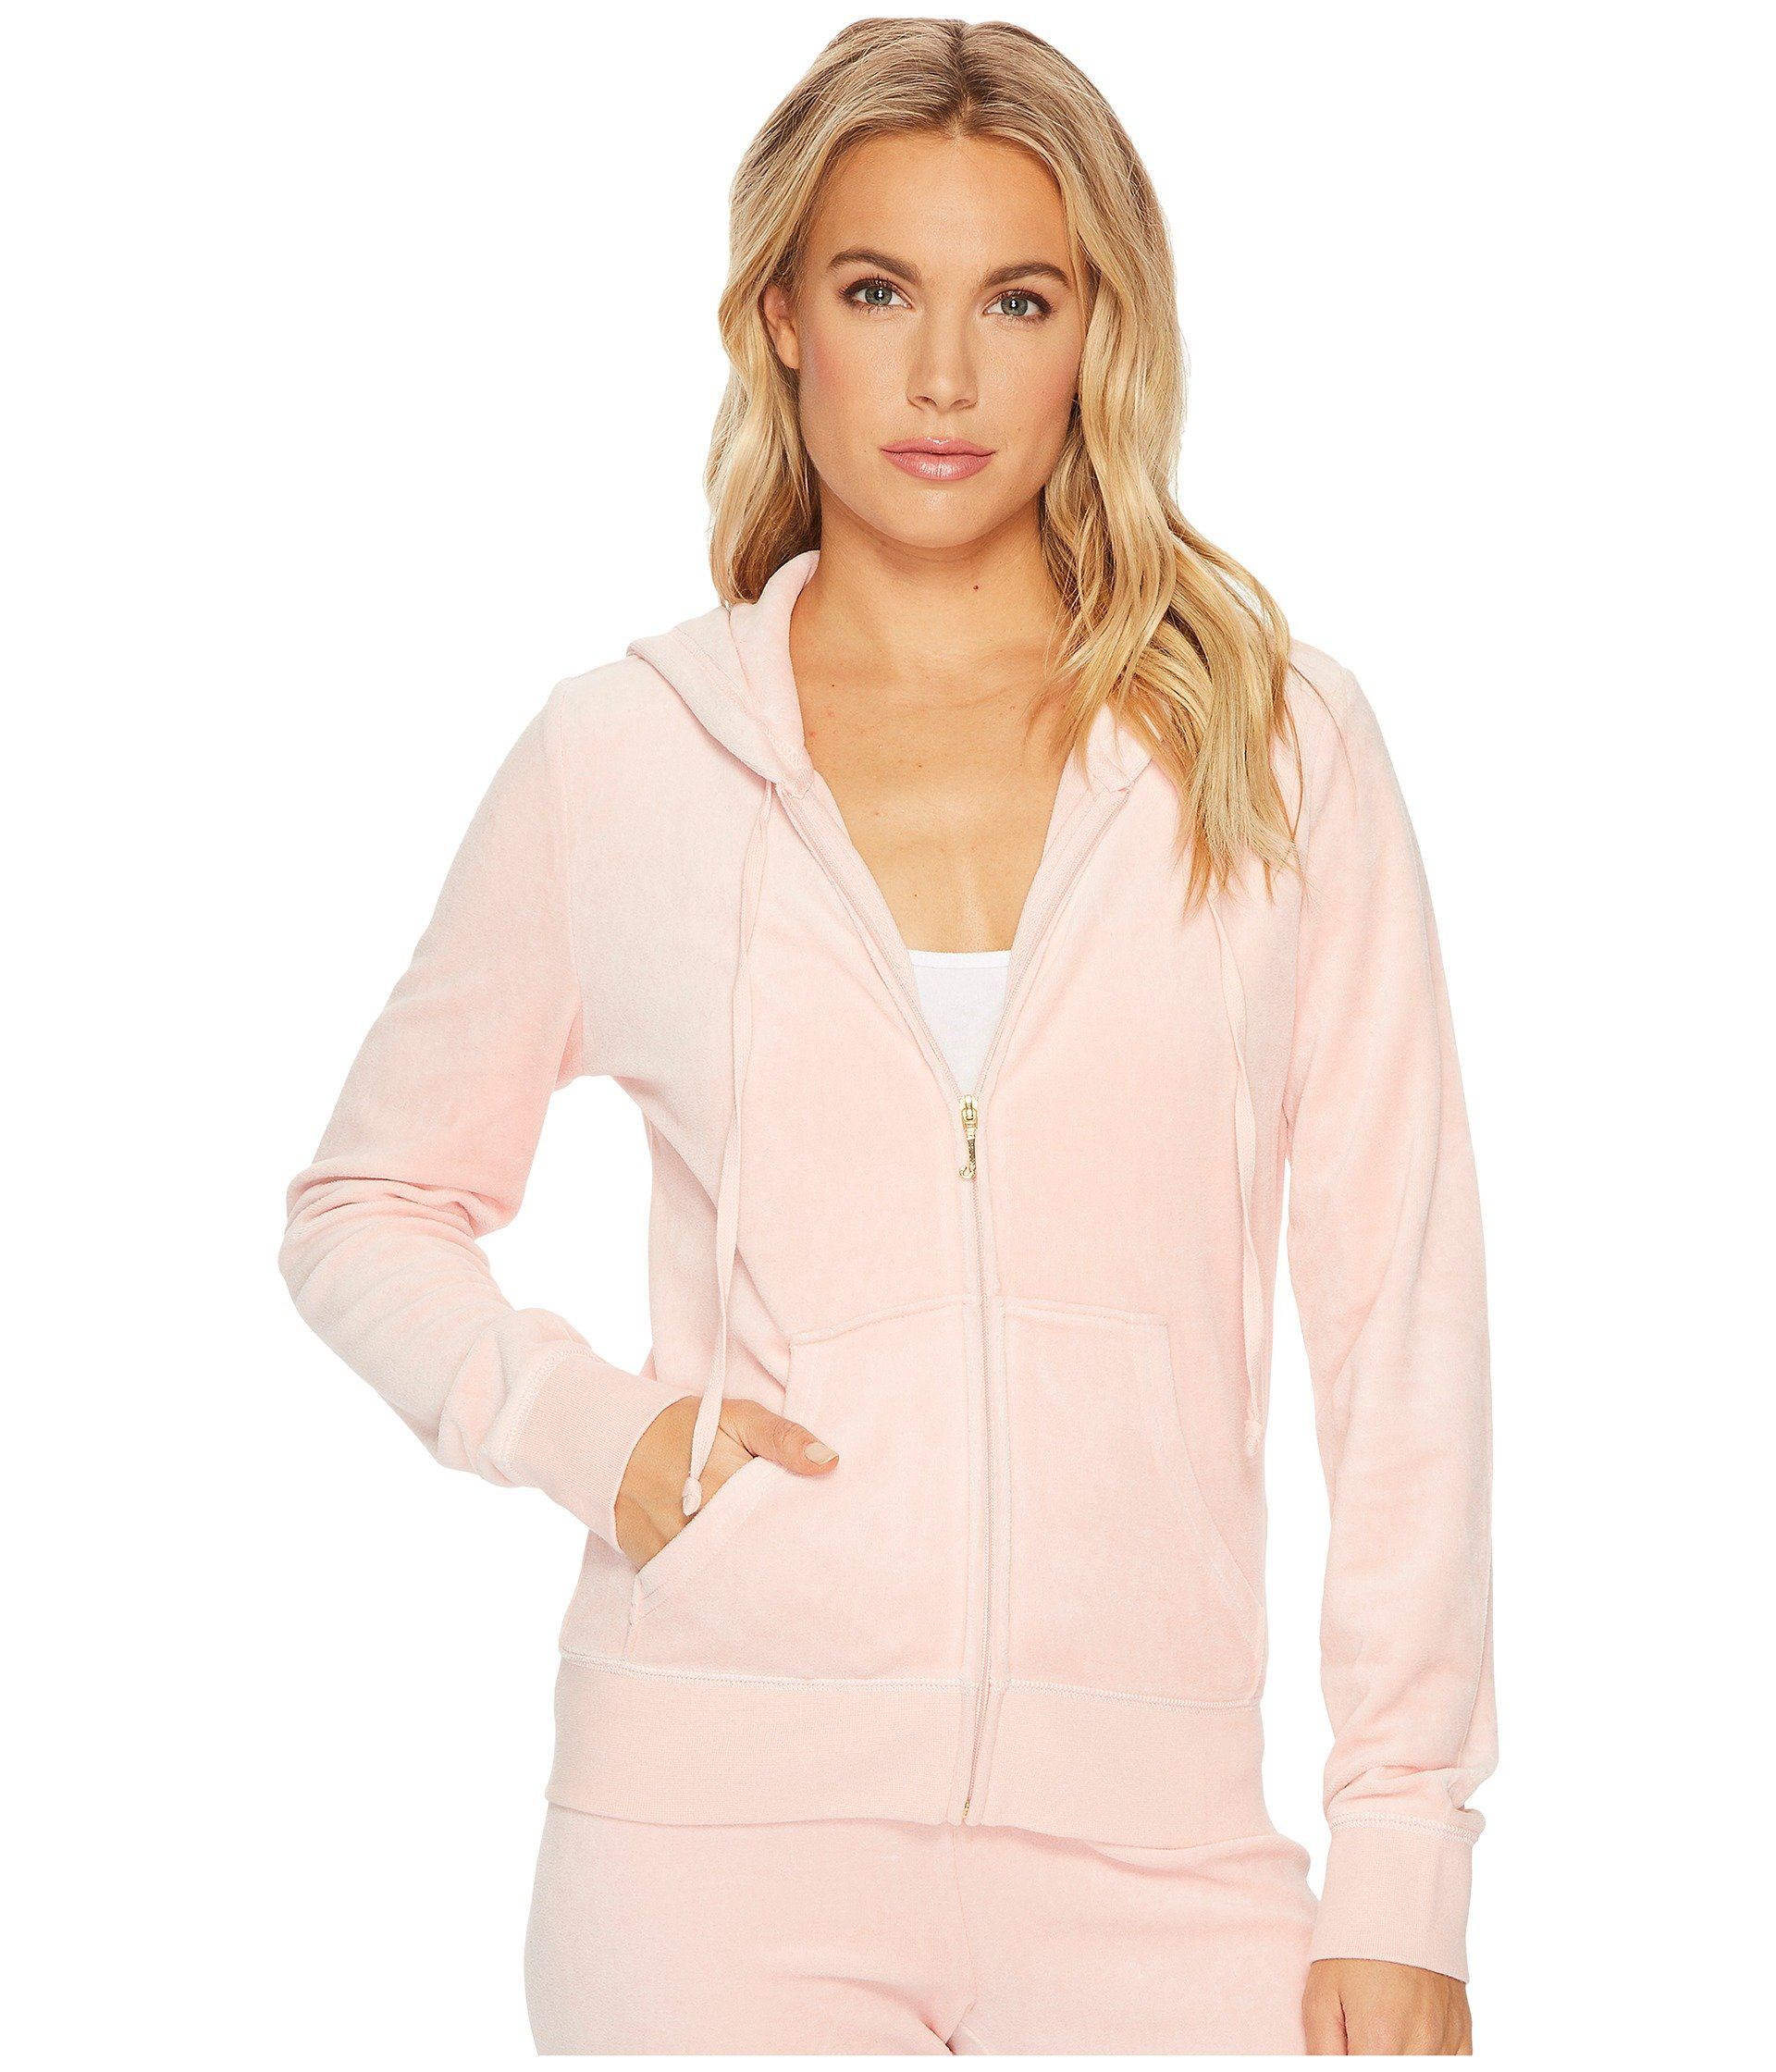 Juicy Couture Women's Robertson Velour Jacket Sugared Icing Petite / X-Small